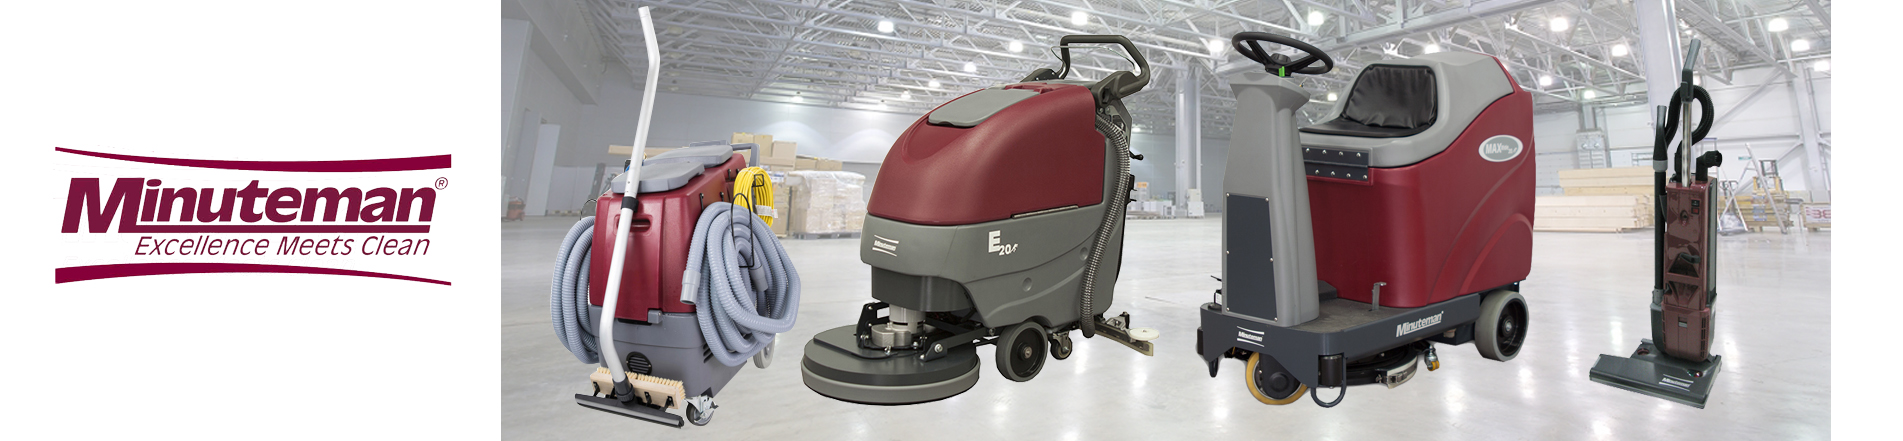 Minuteman - Excellence Meets Clean - janitorial equipment